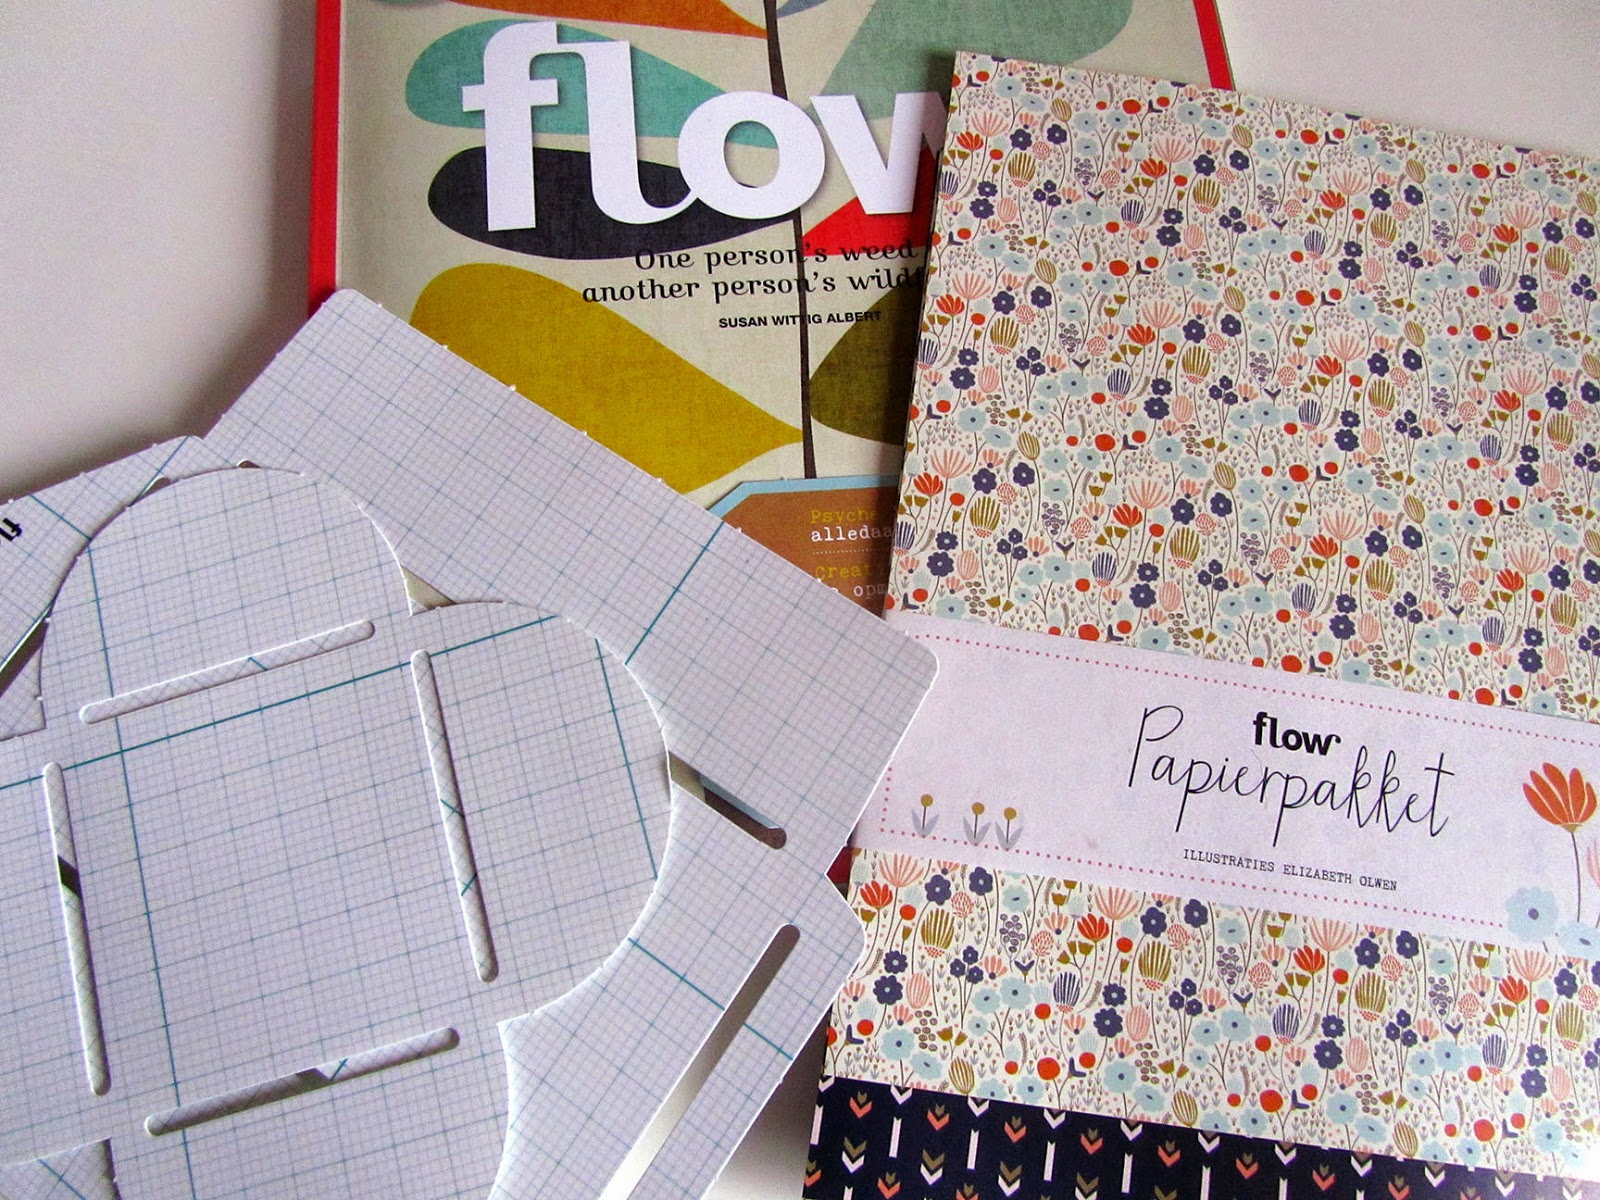 Flow's paper package